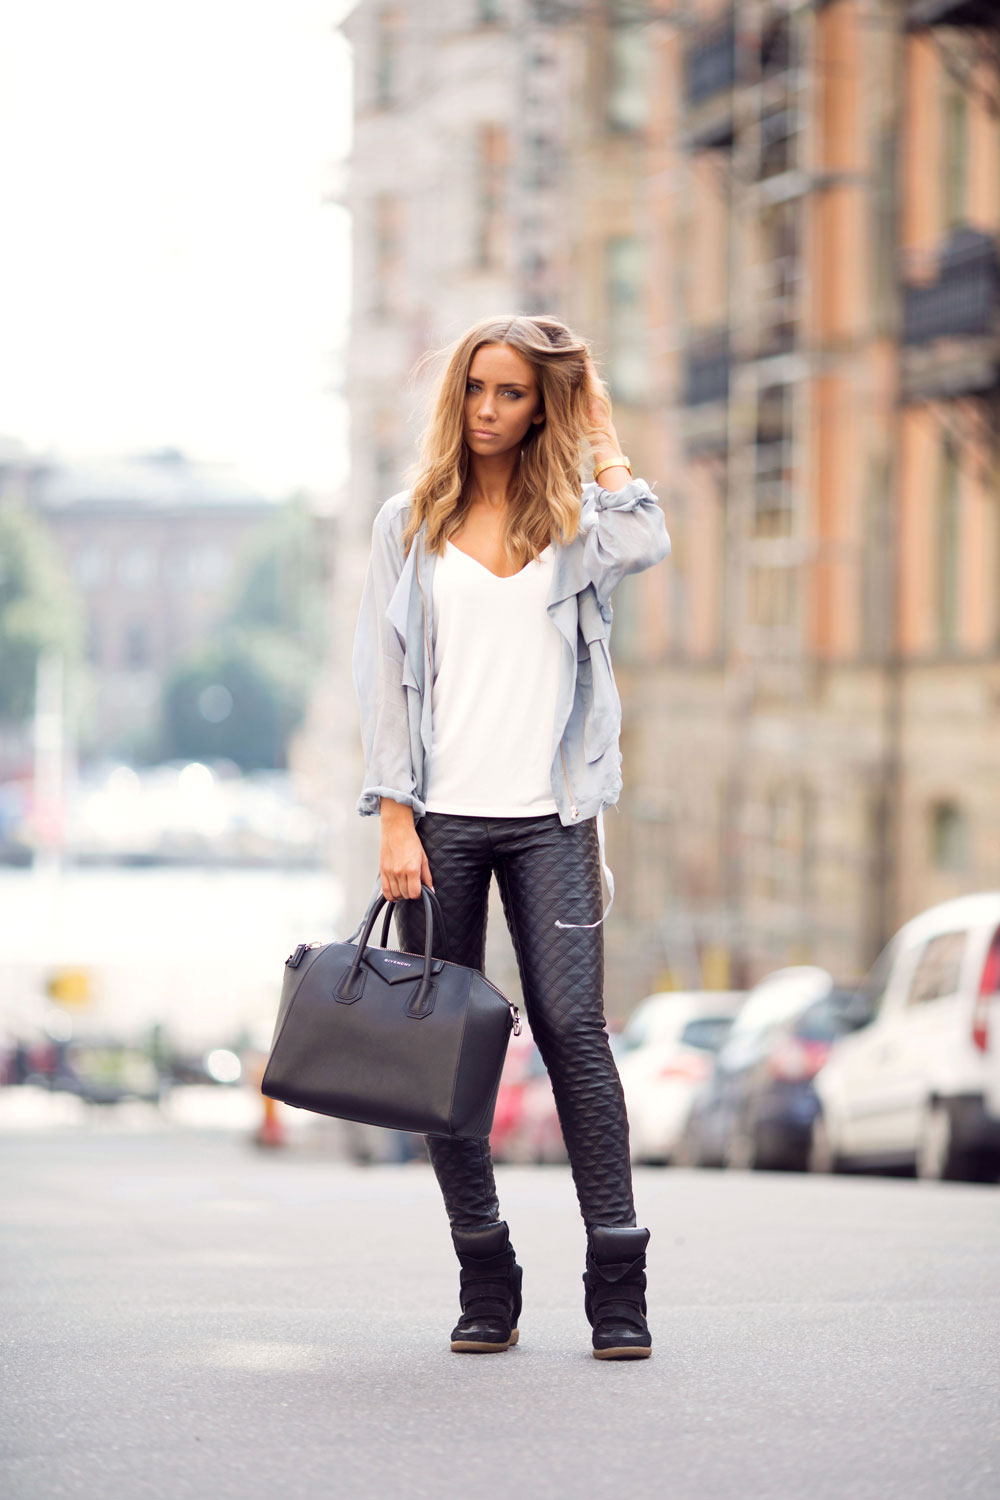 Lisa Olsson is wearing a white top from Gina Tricot, quilted leather trousers from Nelly, shoes from Isabel Marant, jacket from Zara and the bag is from Givenchy